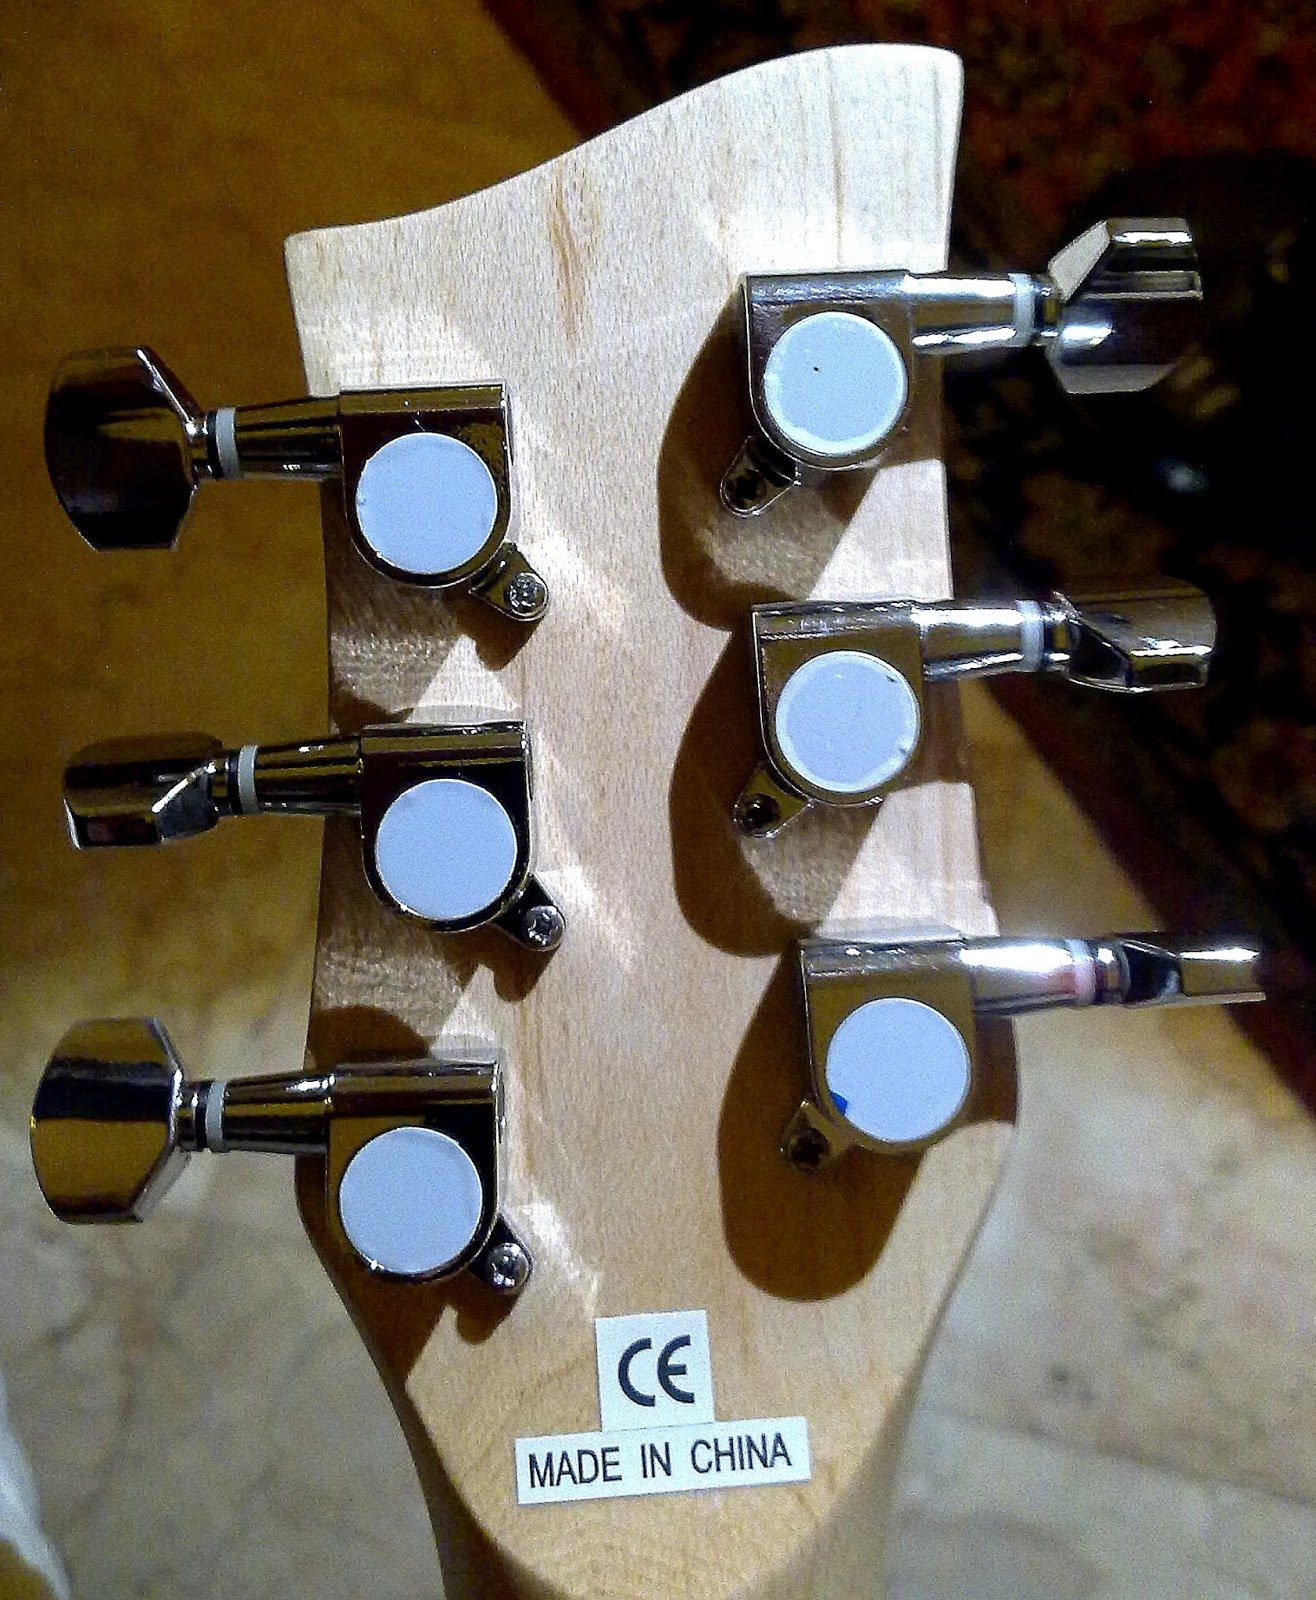 hight resolution of at the head stock i unscrewed the hexagonal top nut of one tuner and found its centre post wiggling merrily after unscrewing one phillips screw from the